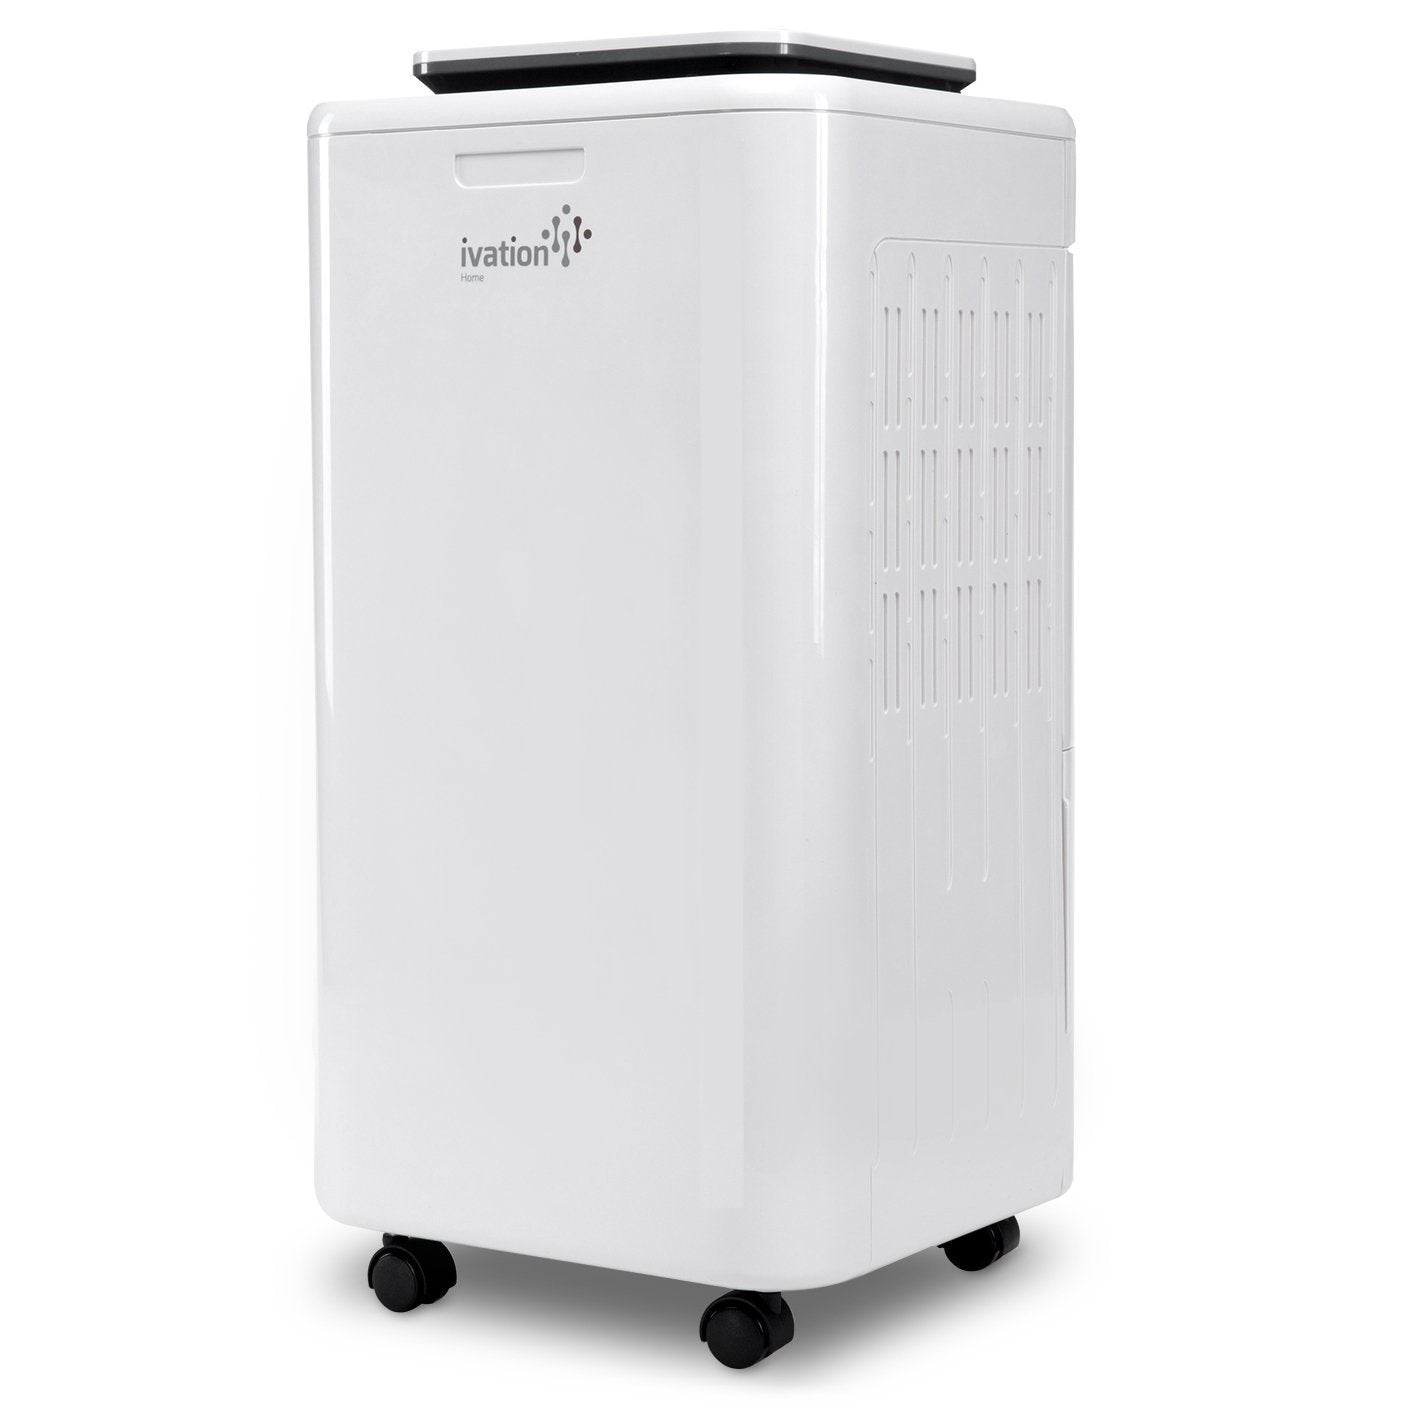 Best seller  ivation 11 pint small area compressor dehumidifier with continuous drain hose air purifier ionizer for smaller spaces bathroom attic crawlspace and closets for spaces up to 216 sq ft